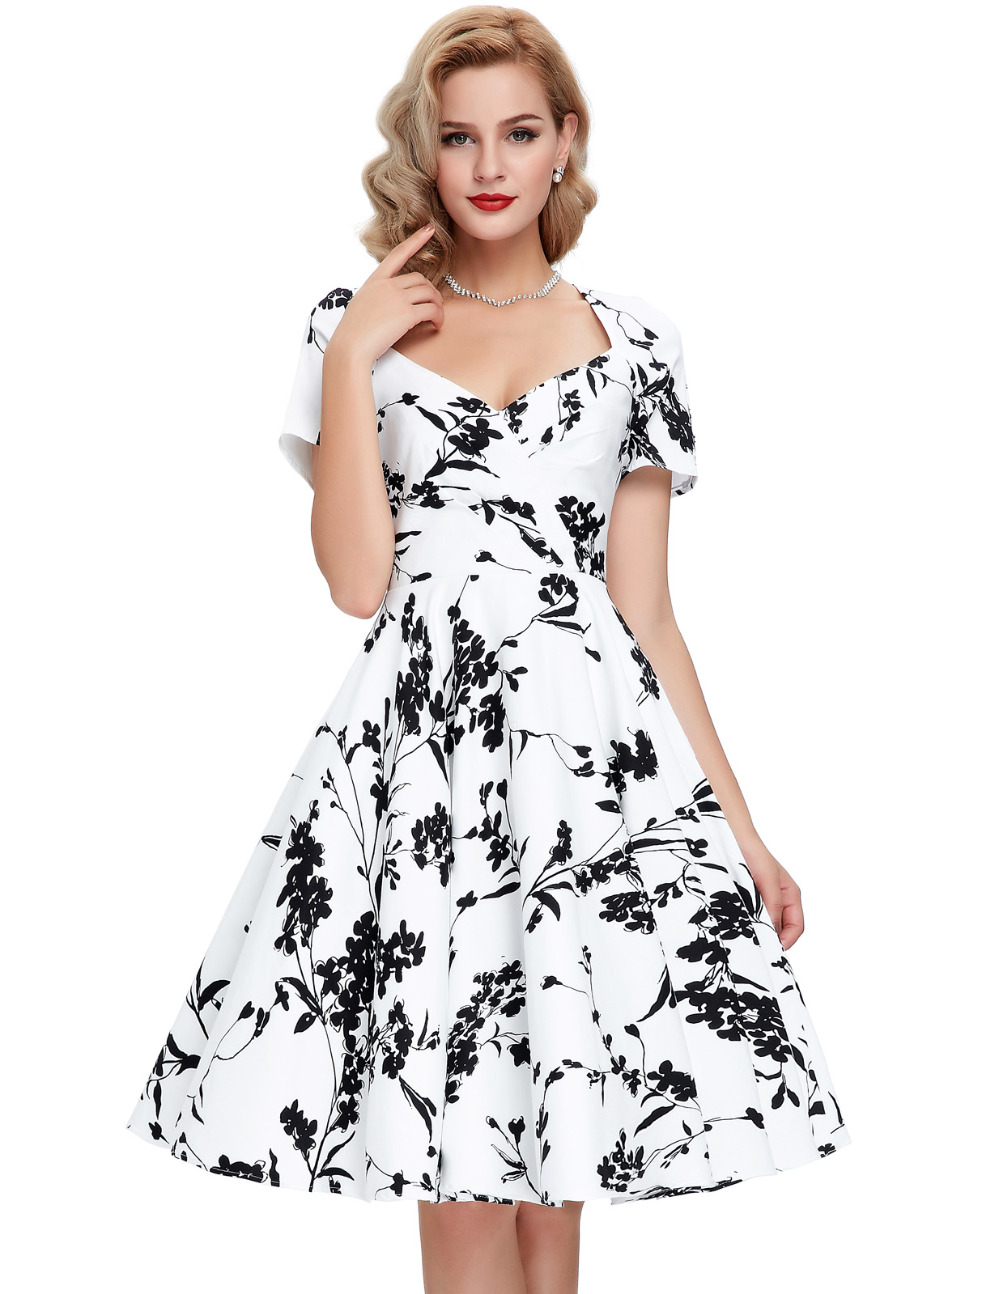 Aliexpress.com : Buy New 60s swing pinup dresses 2016 Summer Women ...